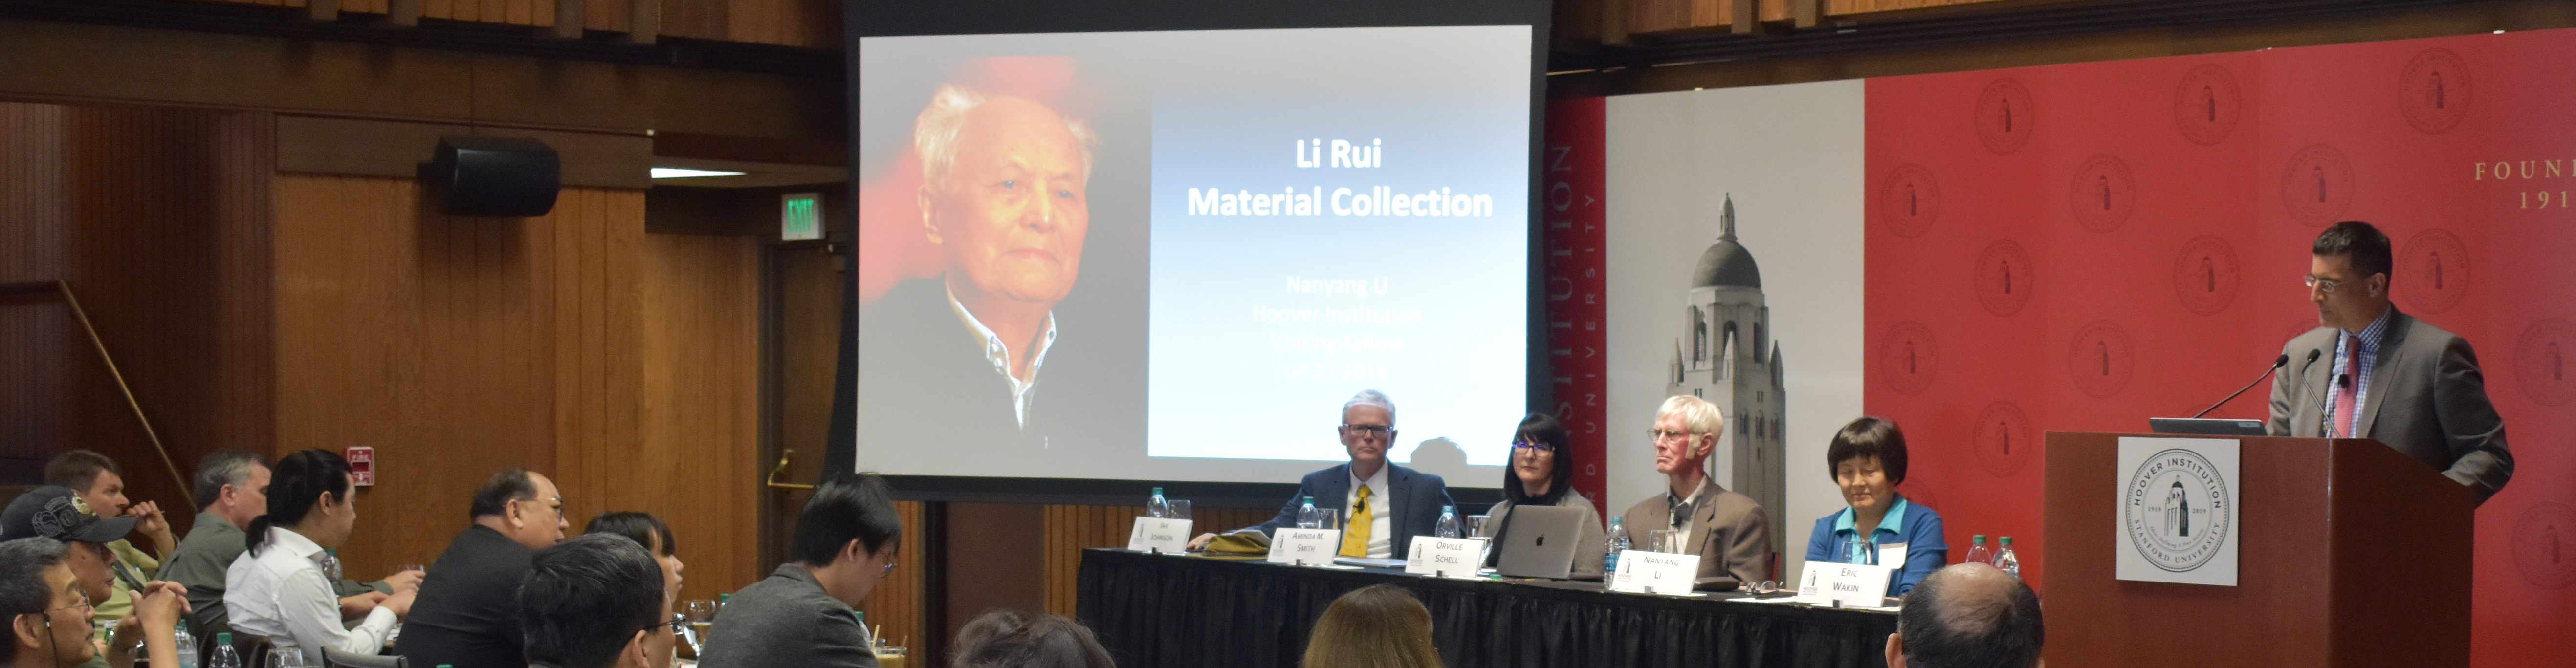 Eric Wakin (right), Hoover deputy director and director of the Library & Archives, chaired and moderated the discussion